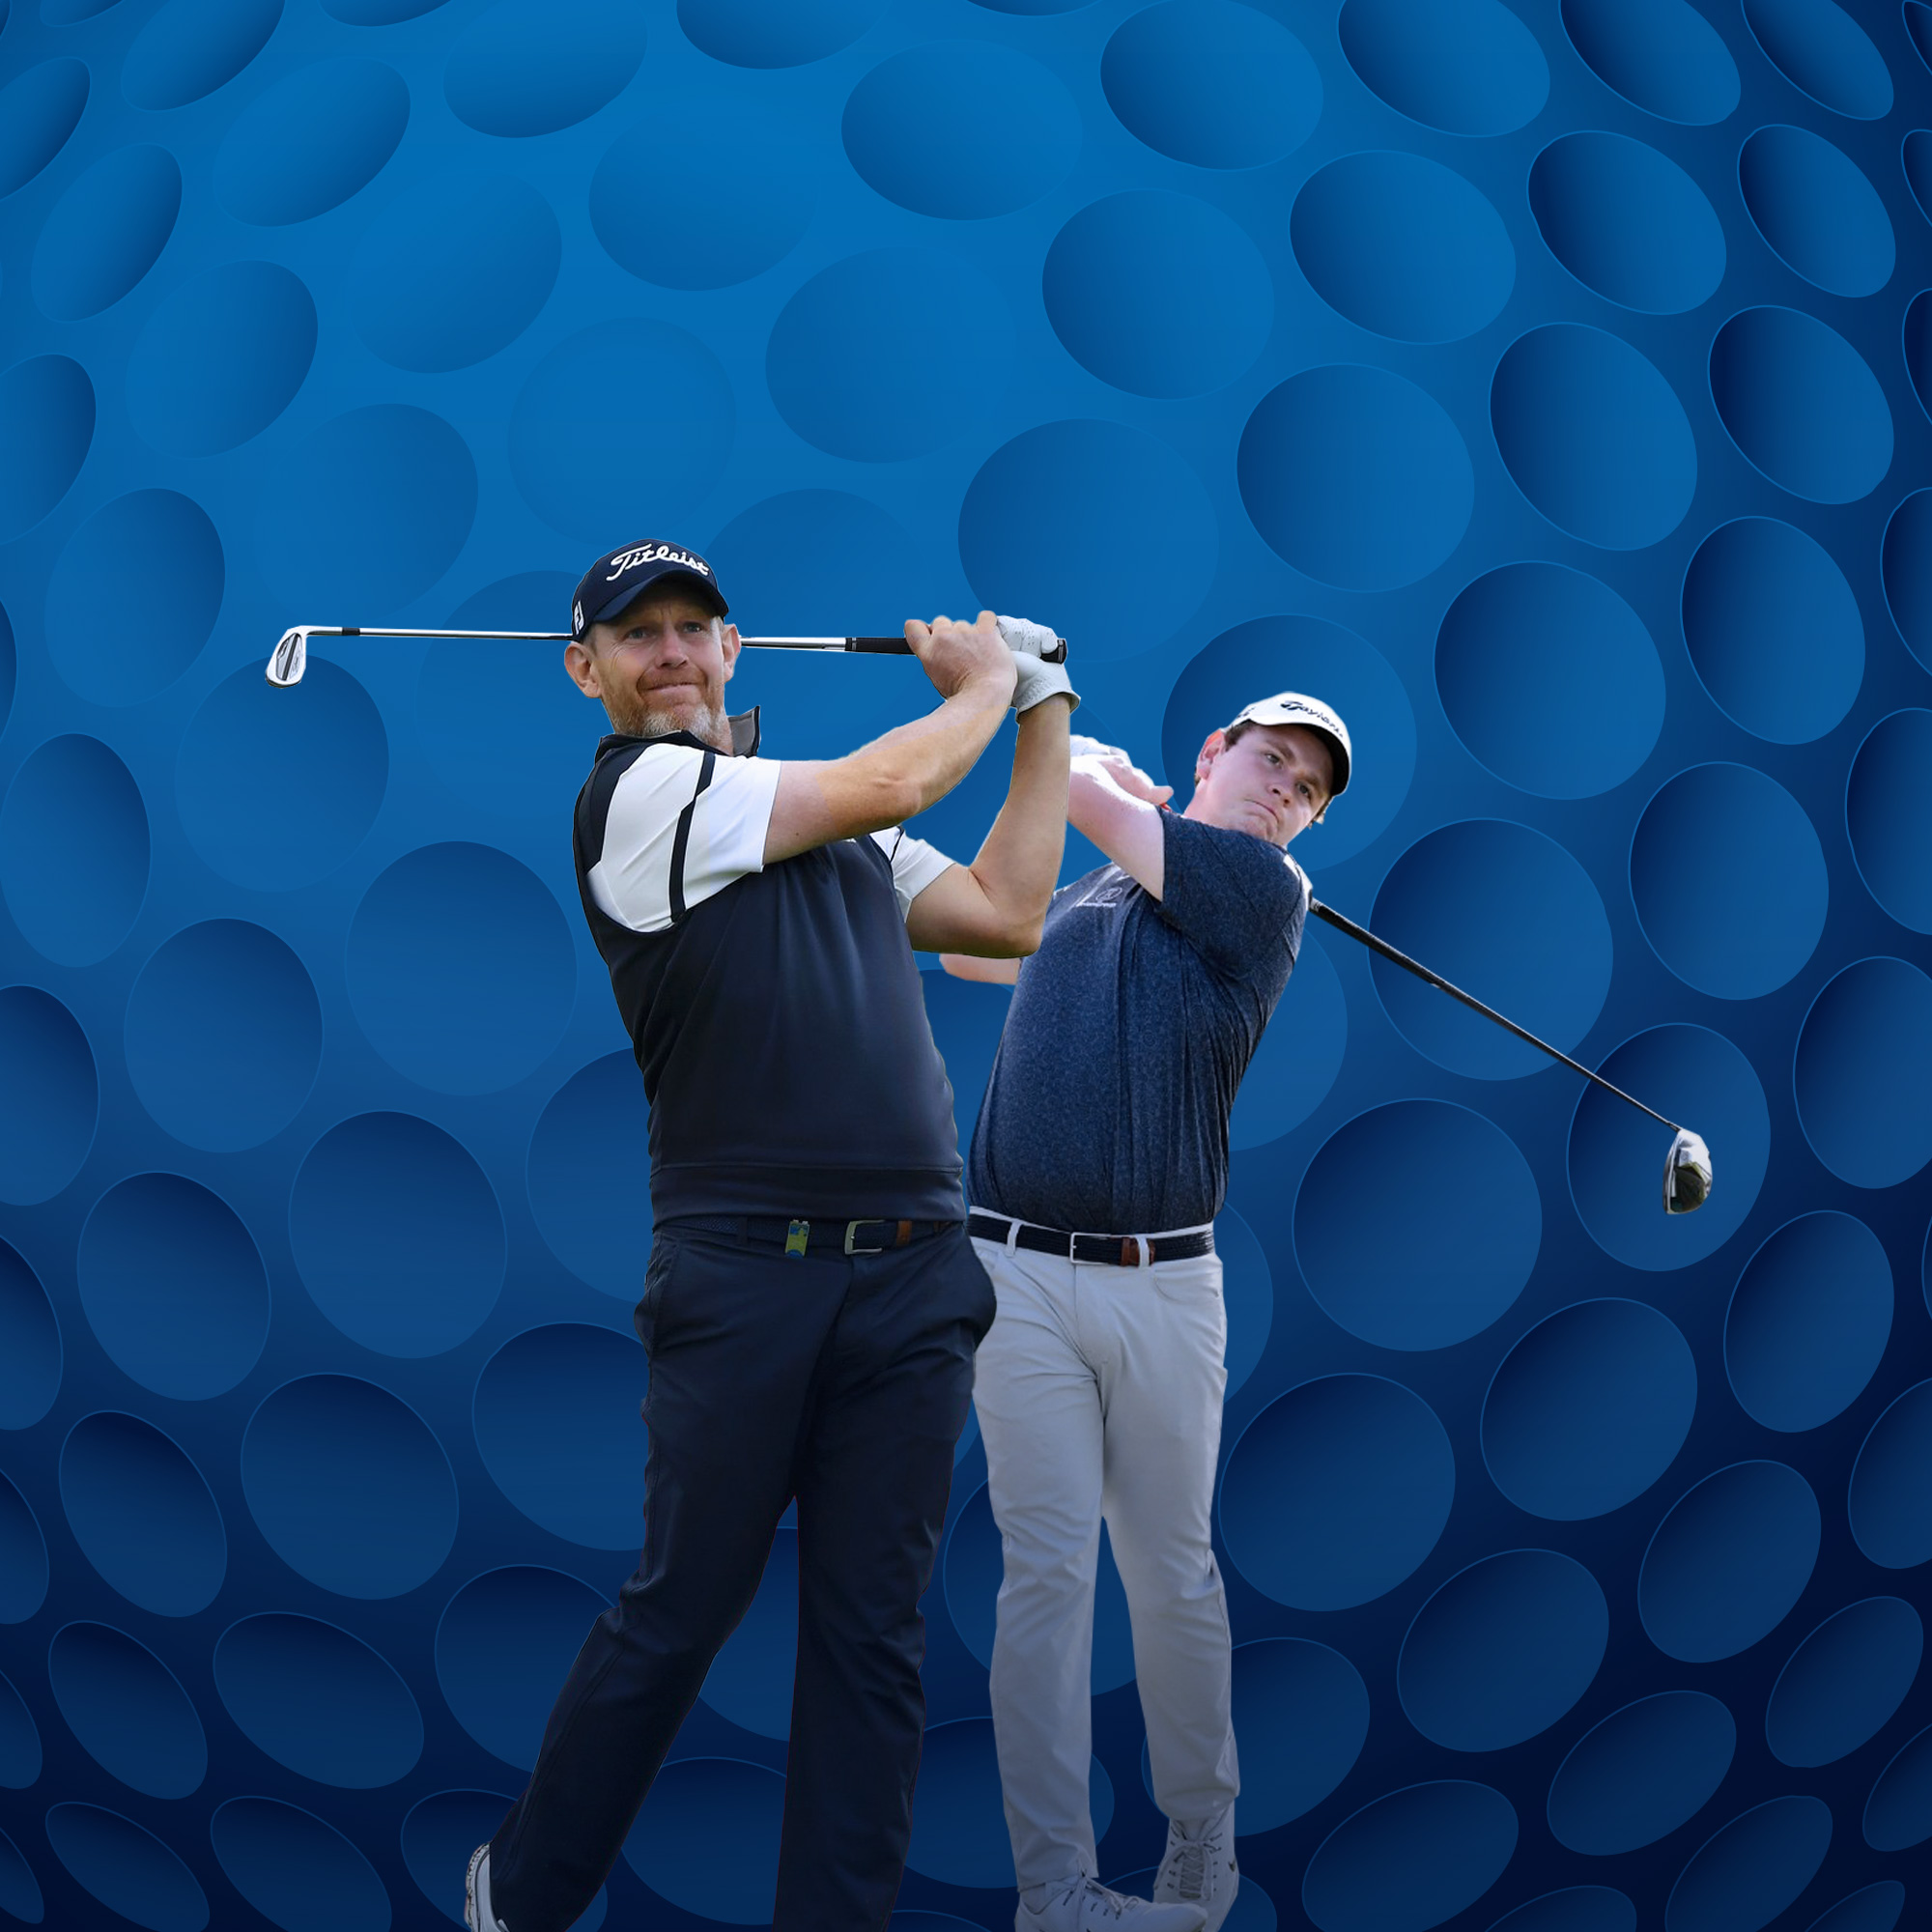 Bob Macintyre and Stephen Gallacher in action